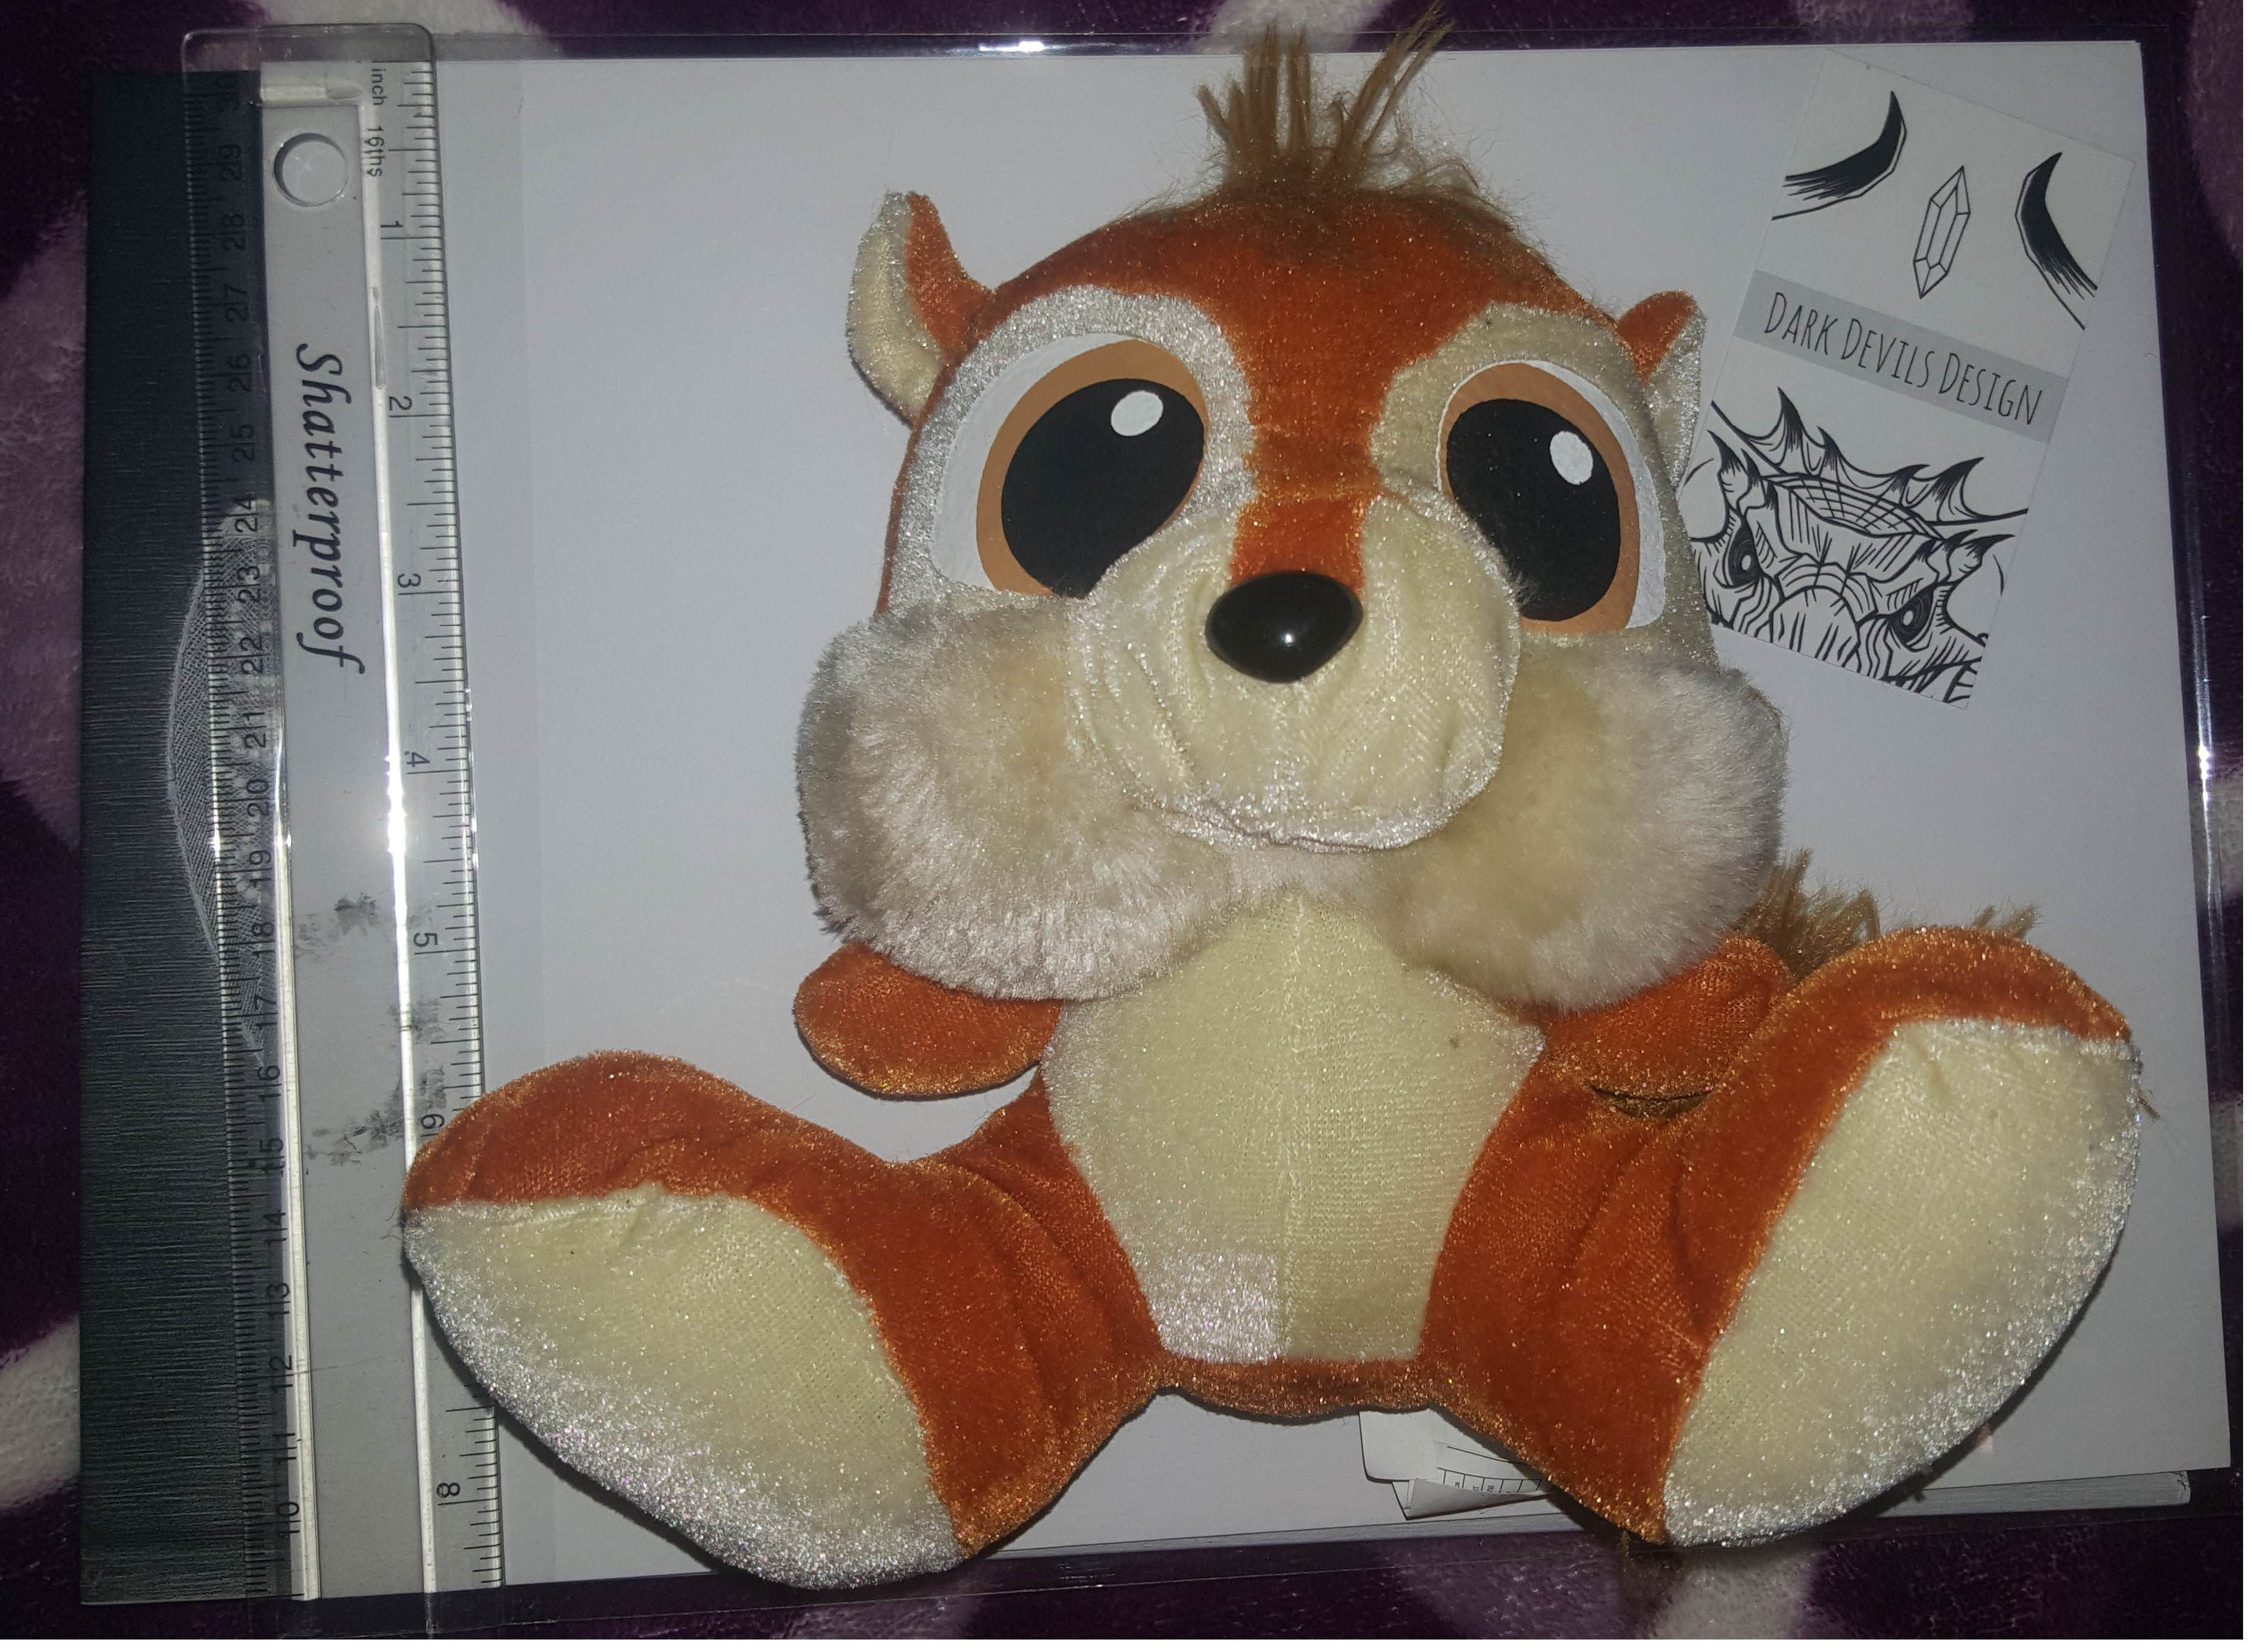 Found A Squirrel Plush At My Thrift Store Apparently Ideal Toys Made Conker Plush Looking For Any Info On This Line Up Ideal Toys Squirrel Conkers [ 2776 x 3784 Pixel ]